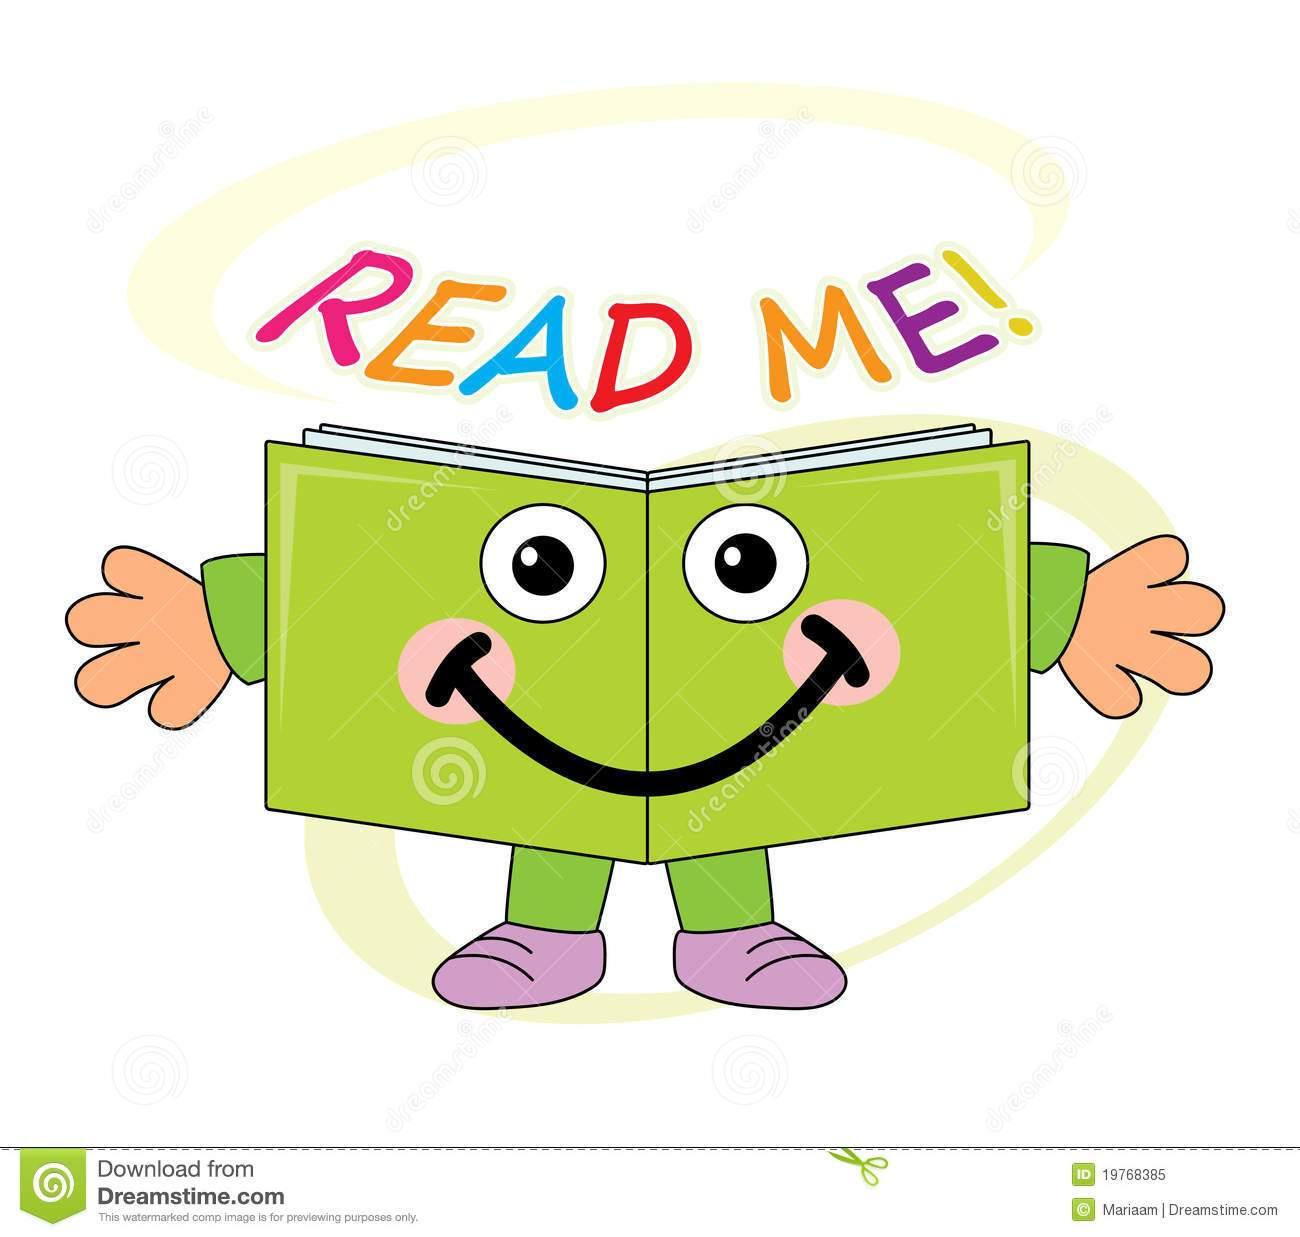 Read me clipart image library library Read me clipart 2 » Clipart Portal image library library